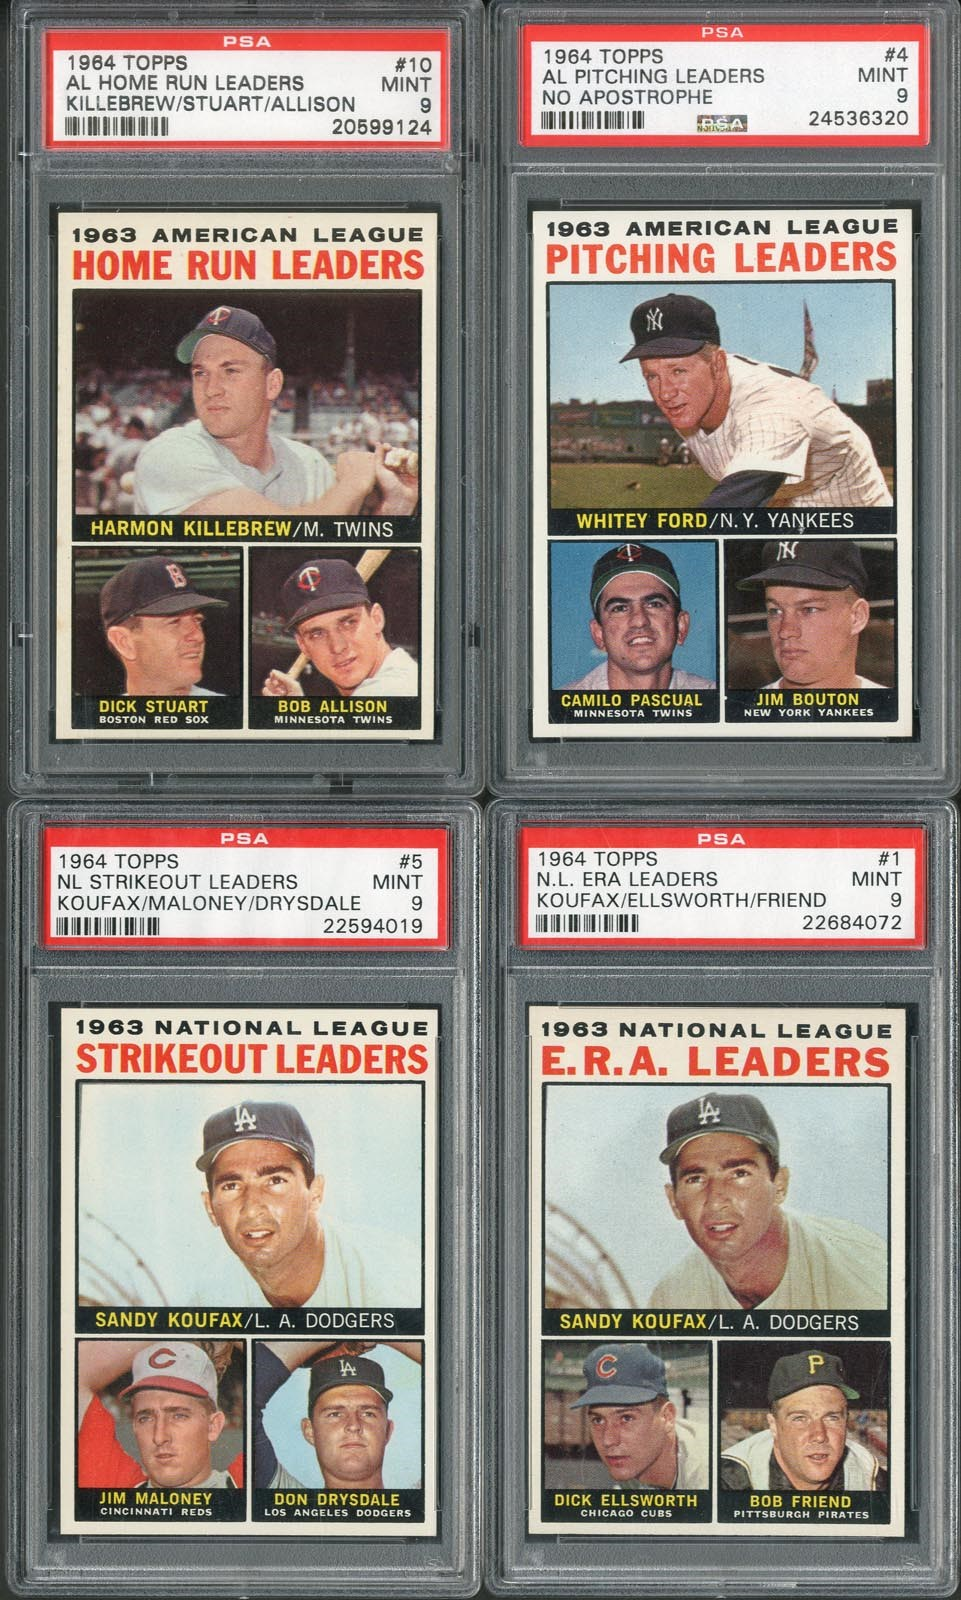 1964 Topps PSA MINT 9 Leaders Collection (4)